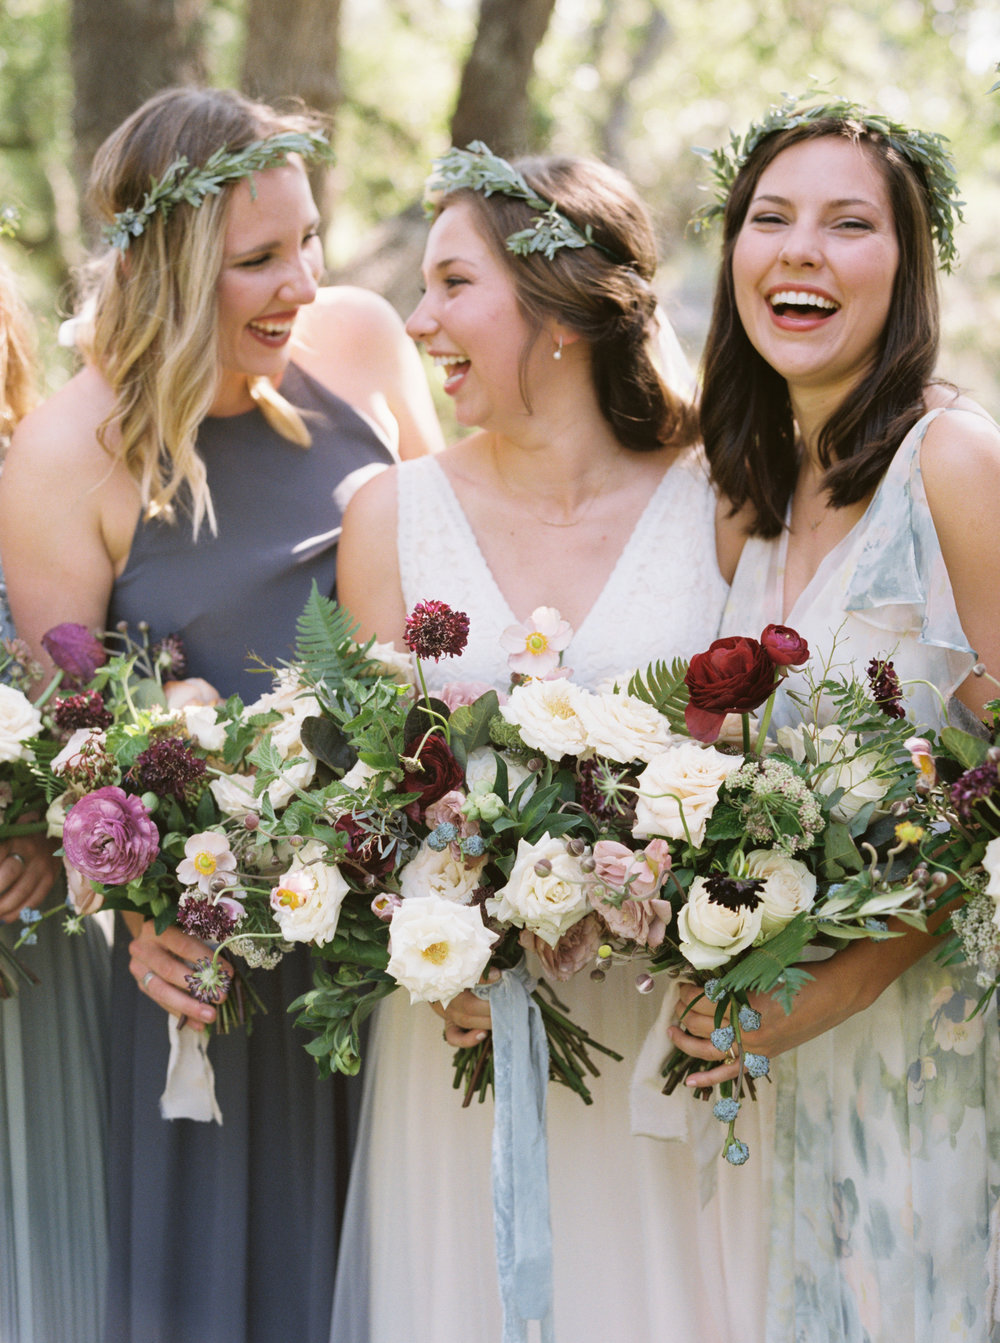 Austin Bride and Bridesmaids with Flower Crowns and Romantic Bouquets